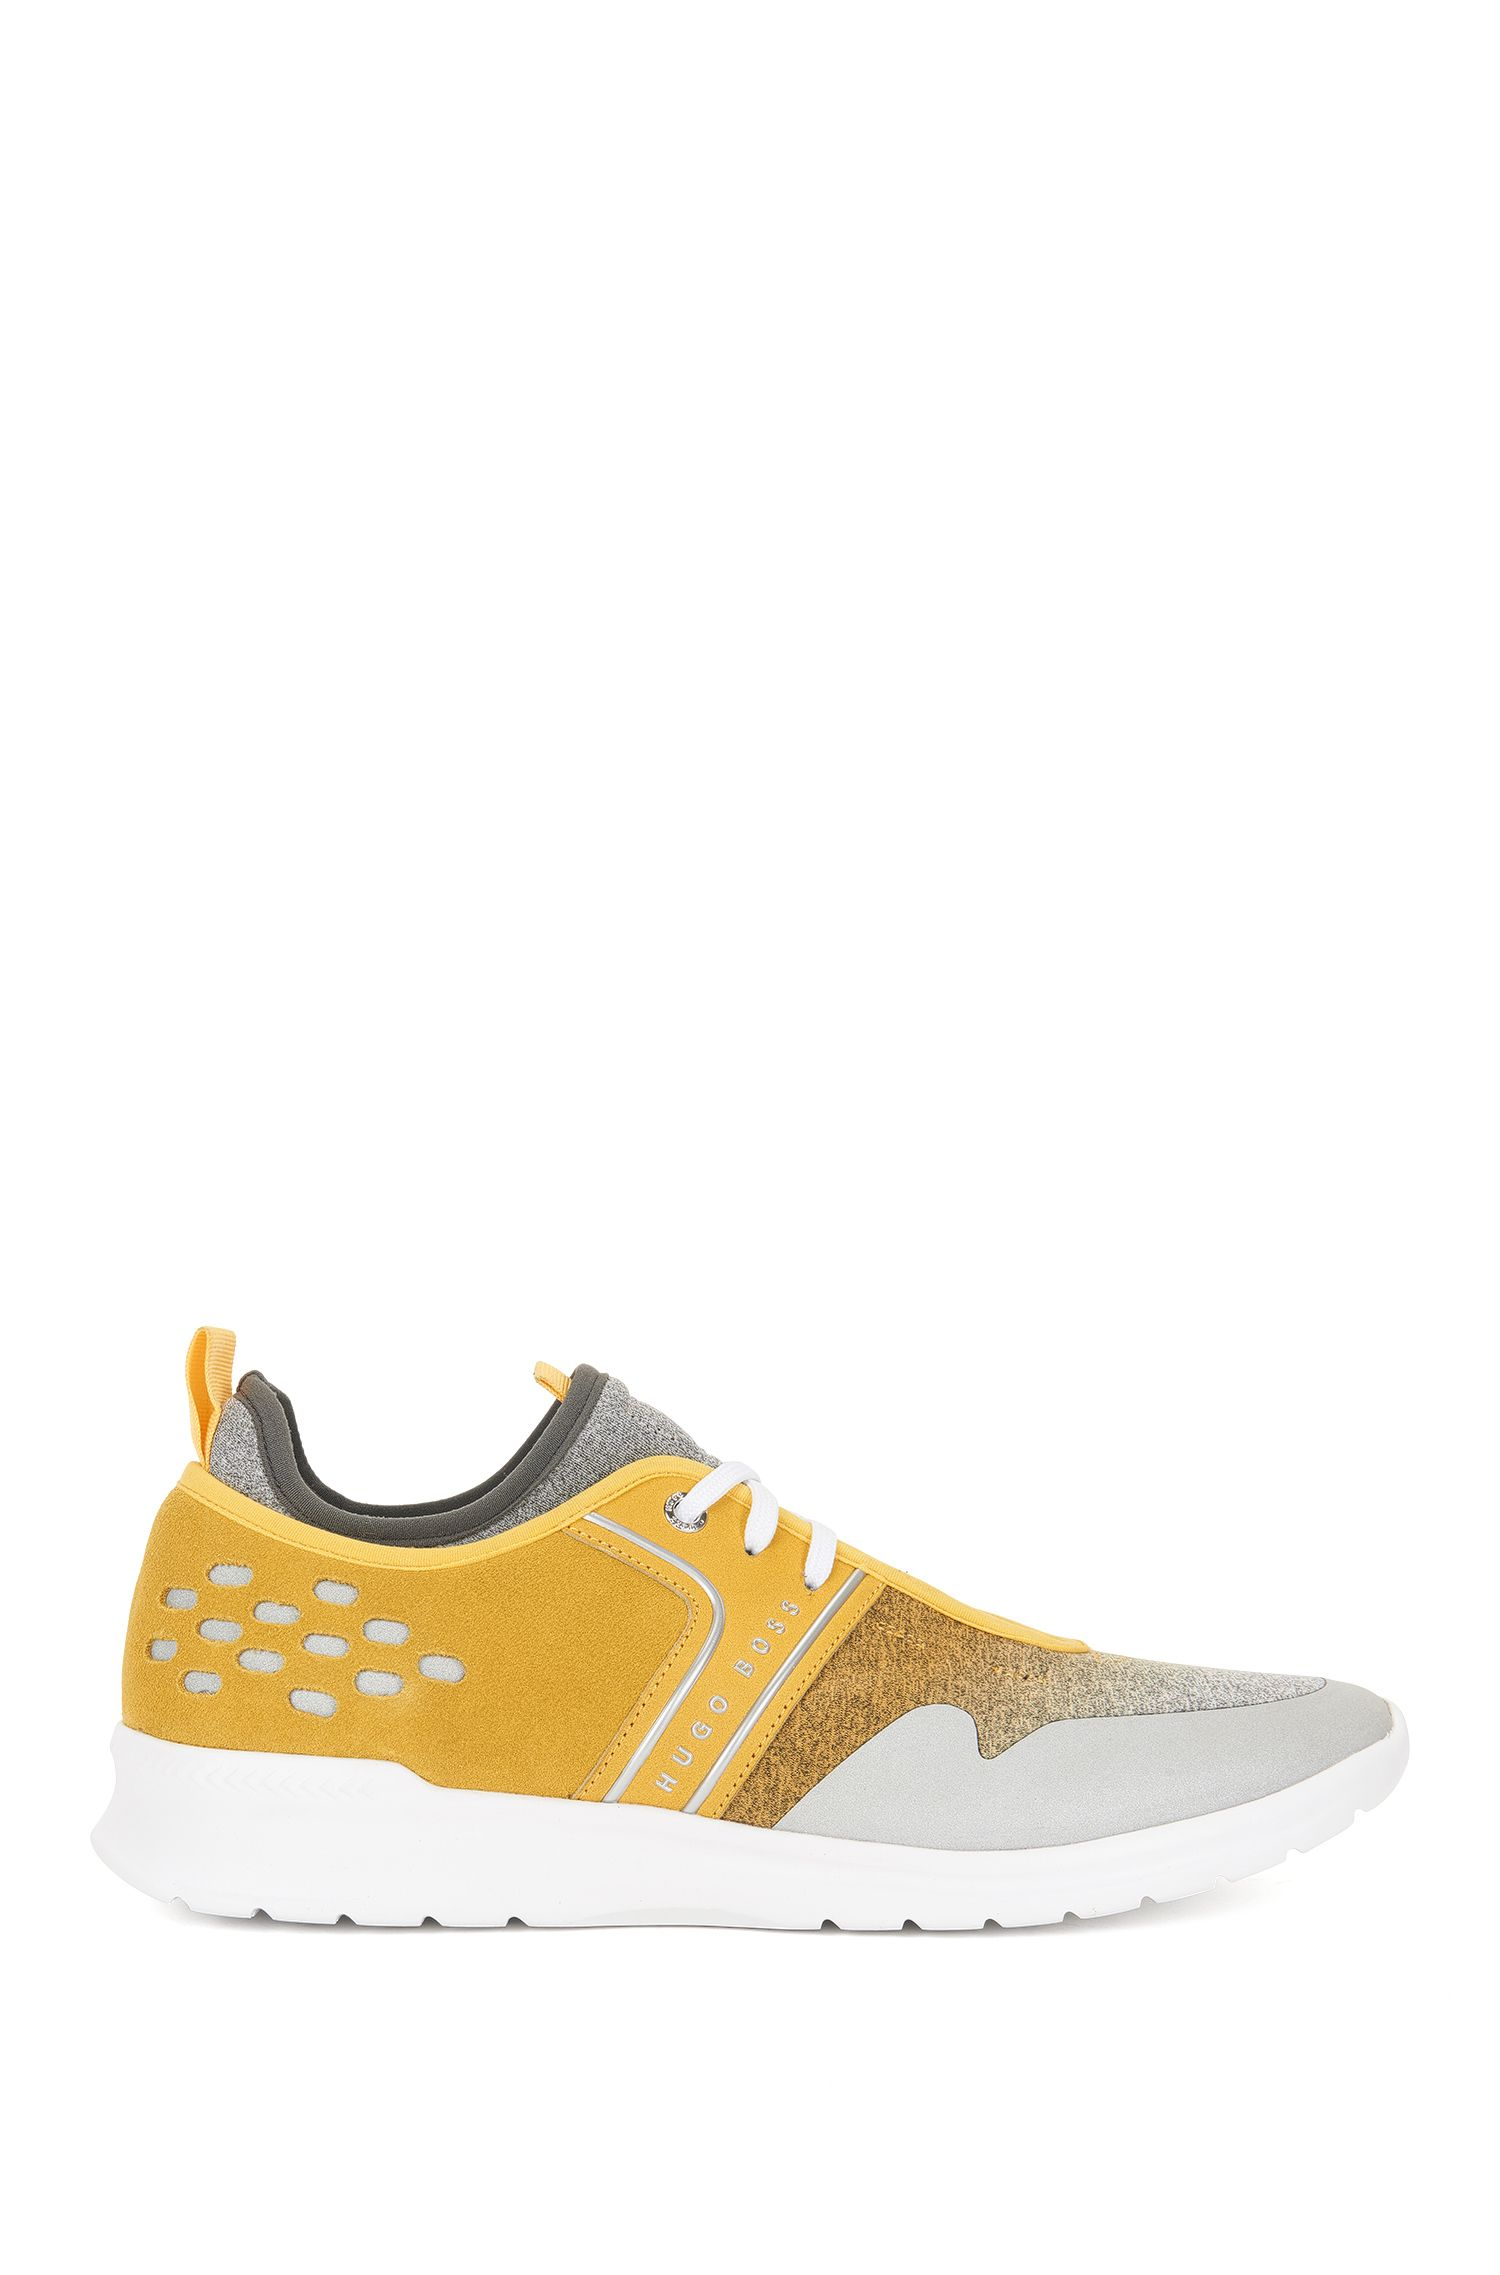 High-Performance Sneaker | Extreme Runn Mxjs, Yellow